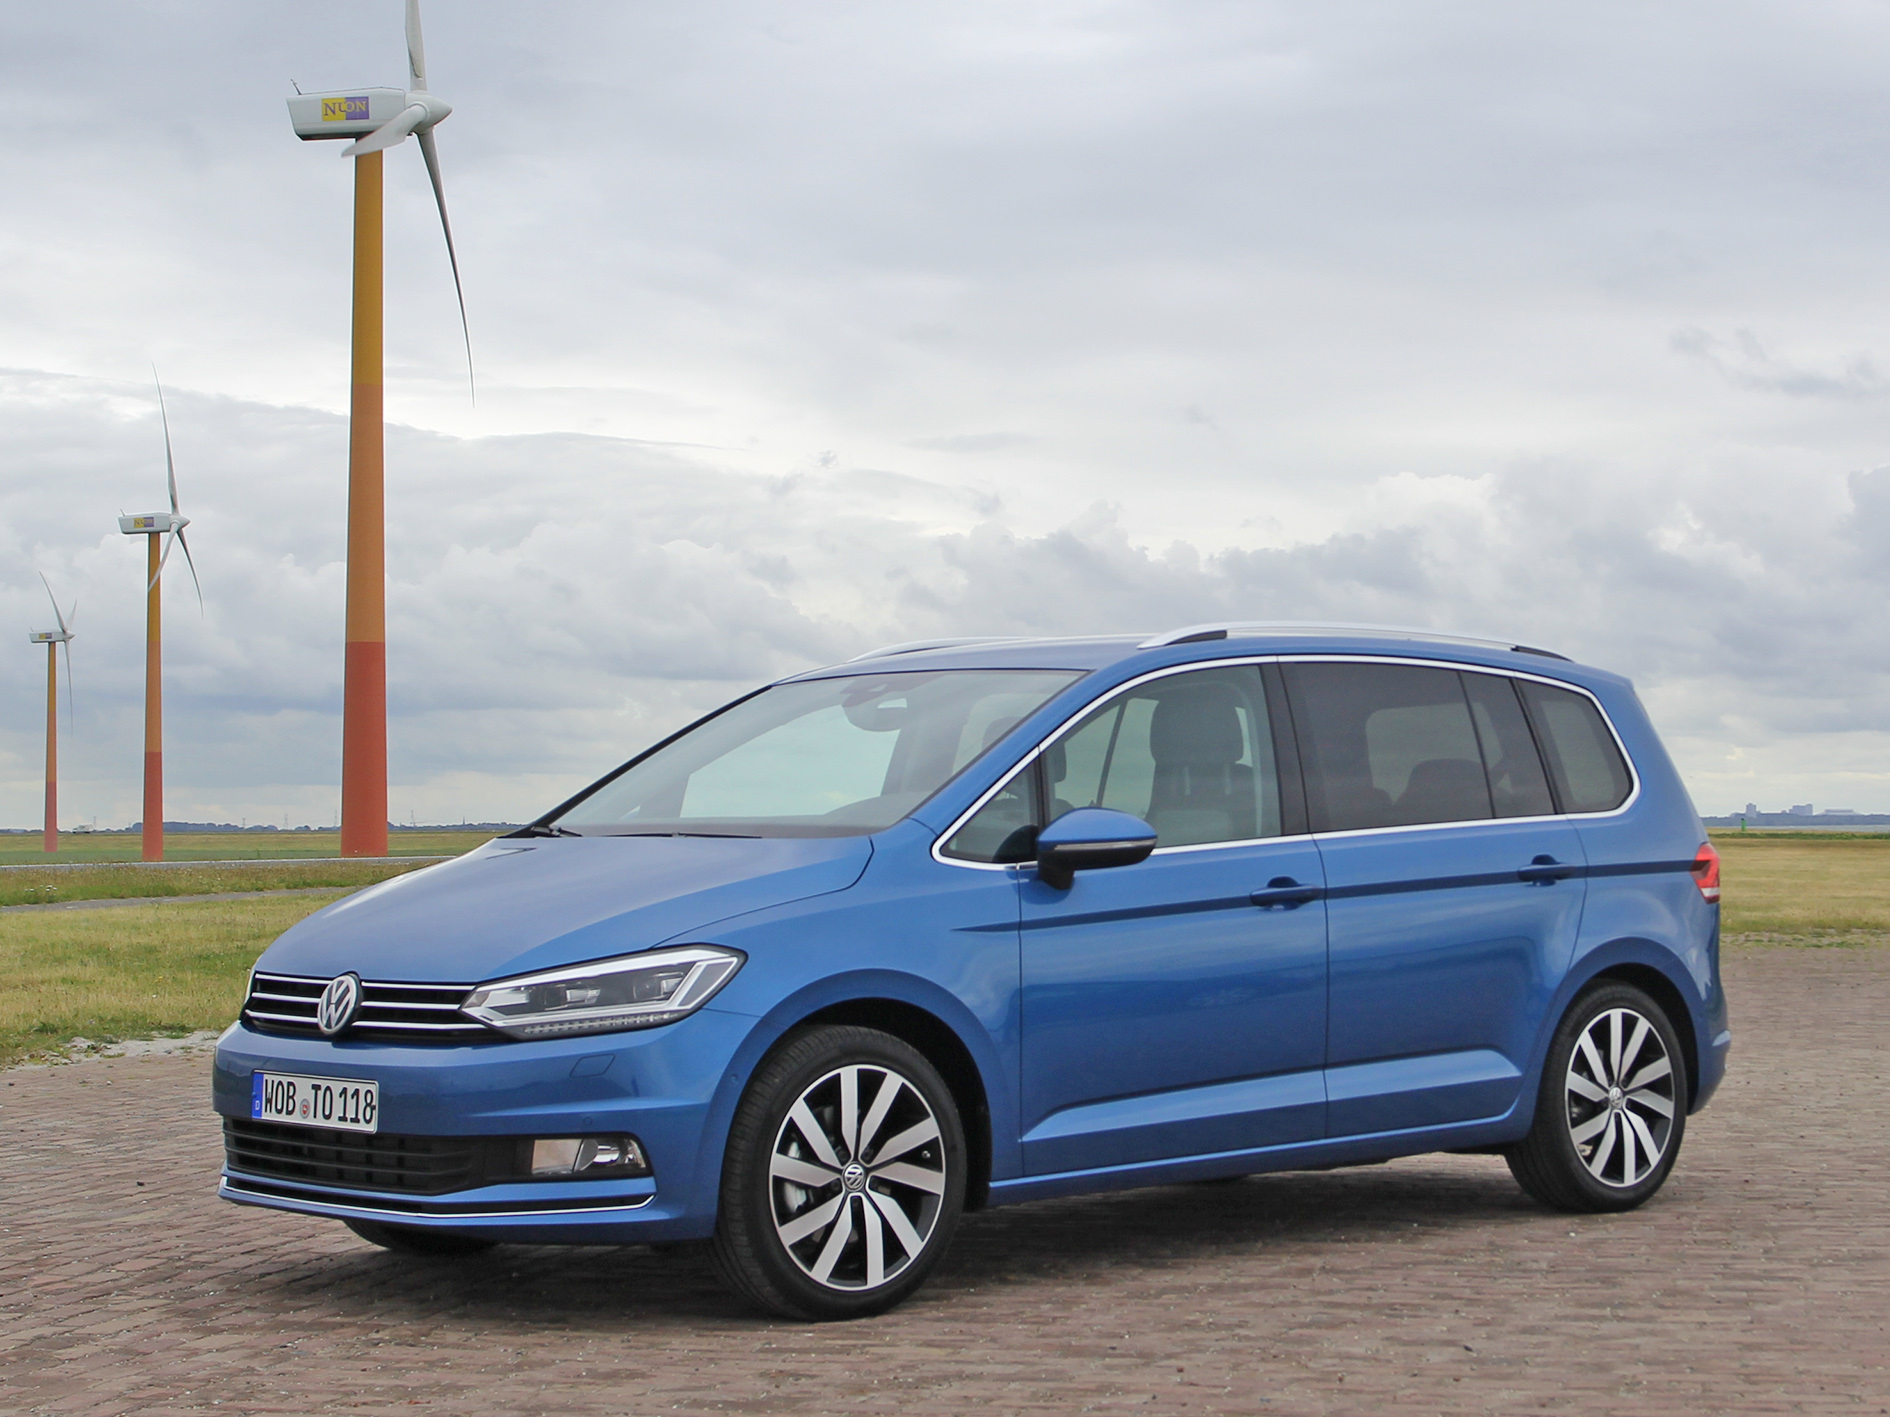 review all new vw touran 2 0 tdi the mpv all rounder test driving report english. Black Bedroom Furniture Sets. Home Design Ideas